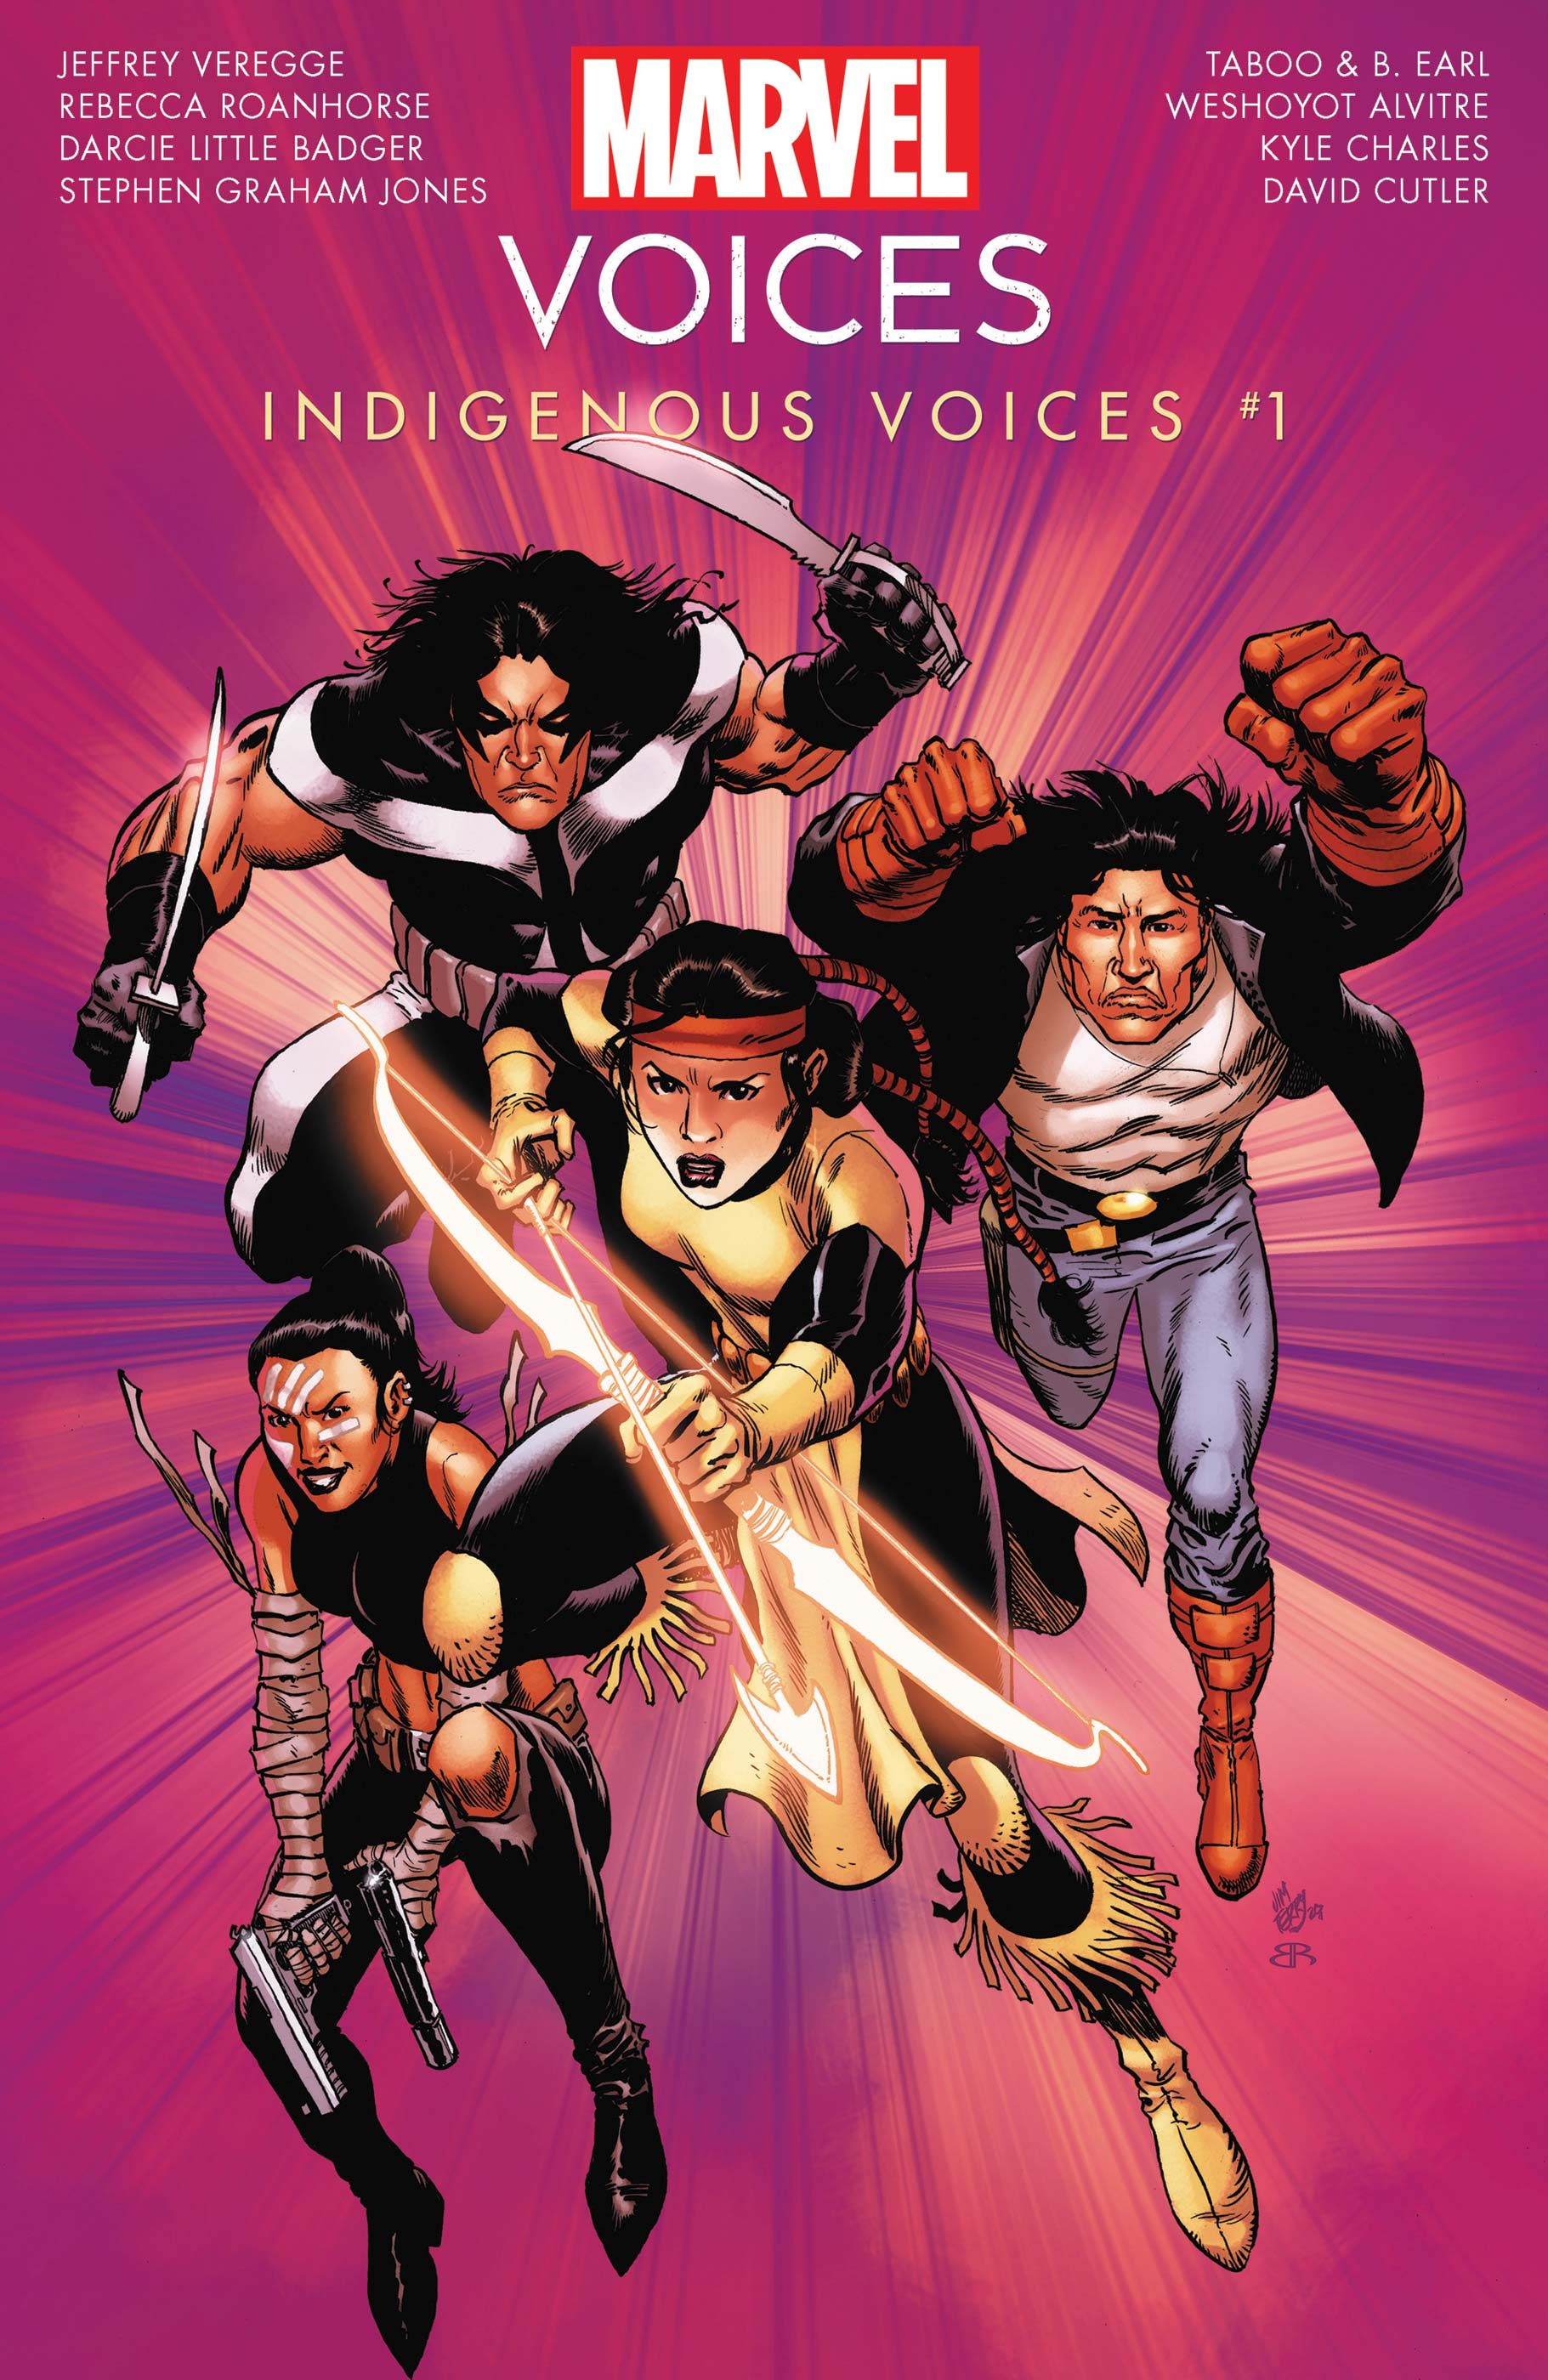 Marvel Comics Indigenous Voices #1 Cover by James Terry